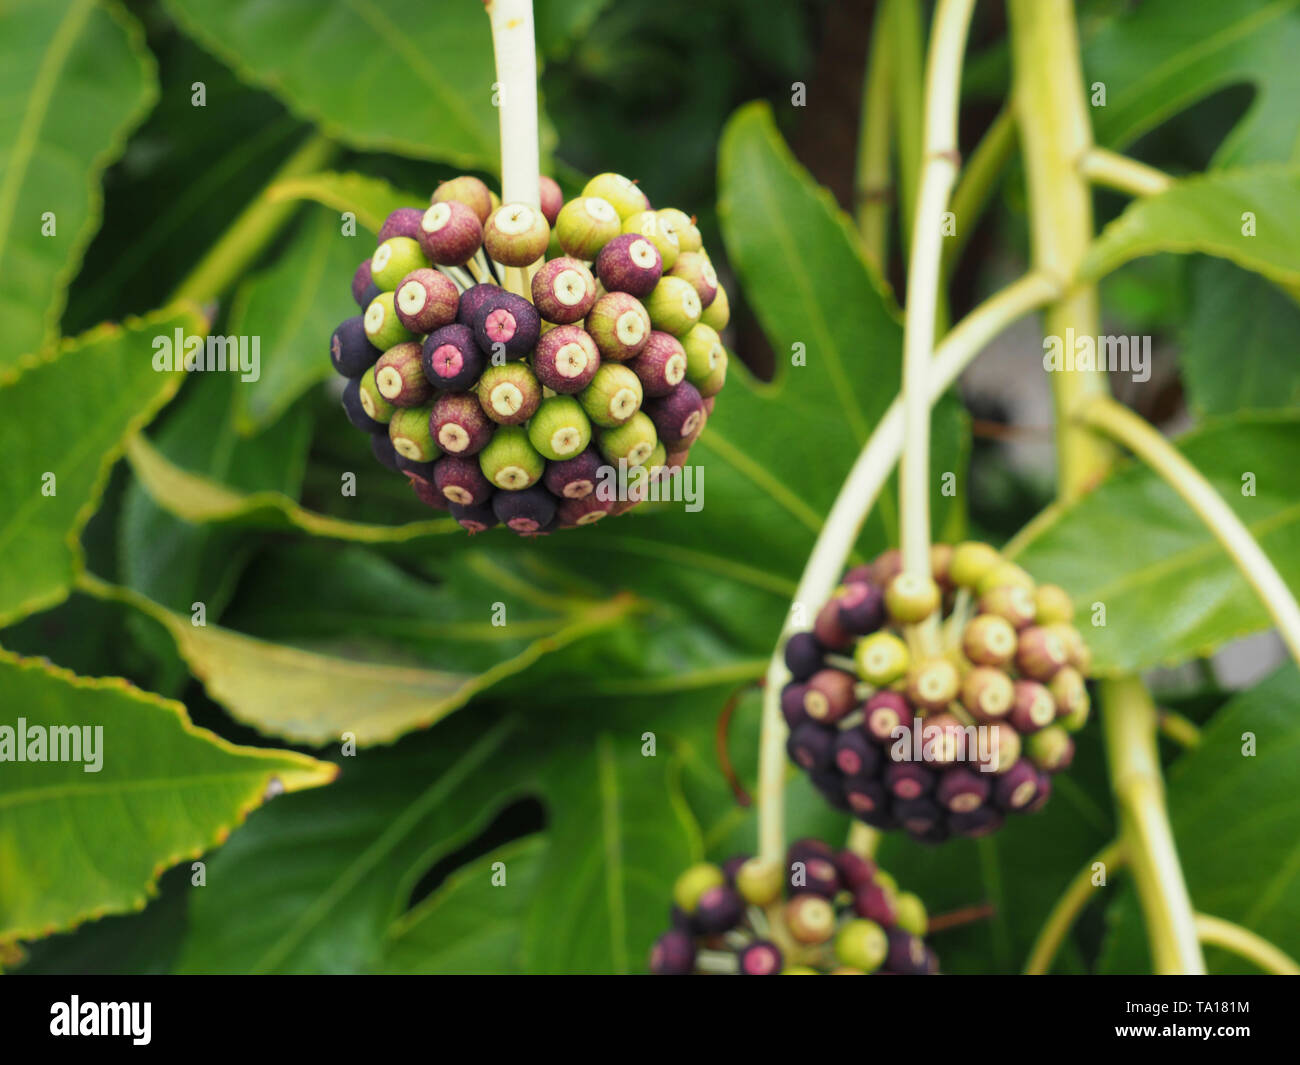 Plant with round fruits in kamakura japan - Stock Image